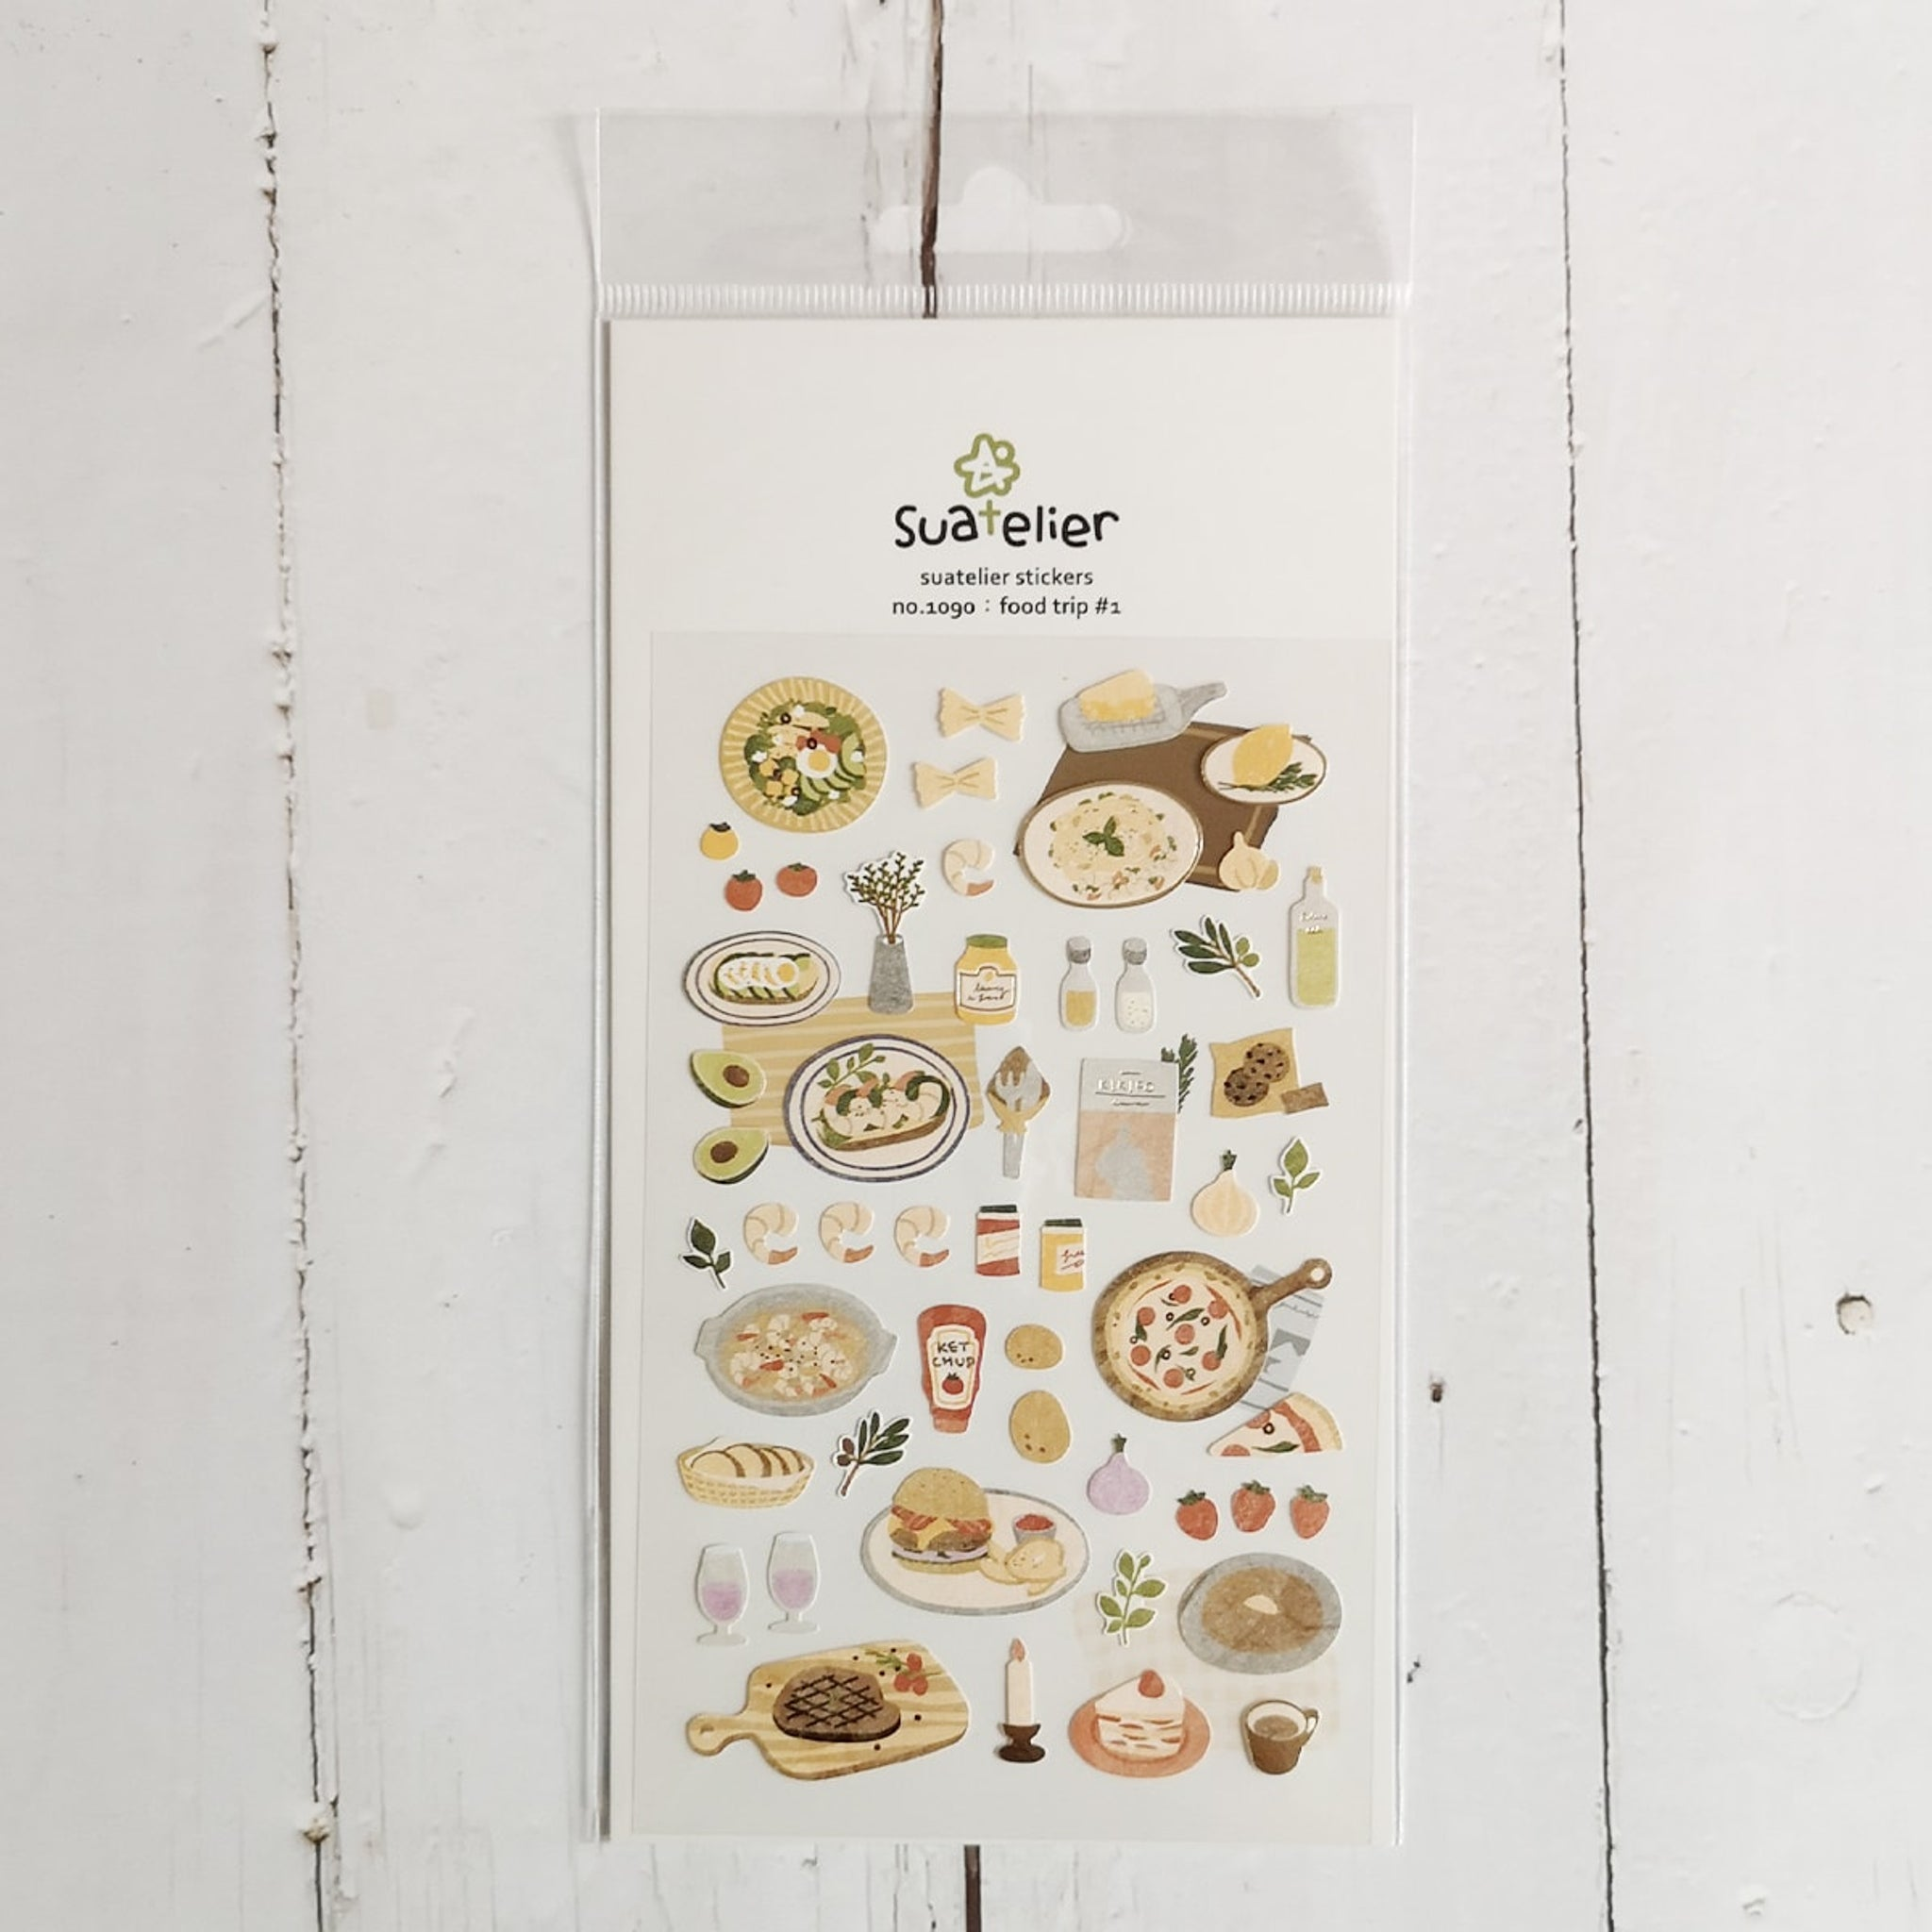 Suatelier Food Trip #1 sticker